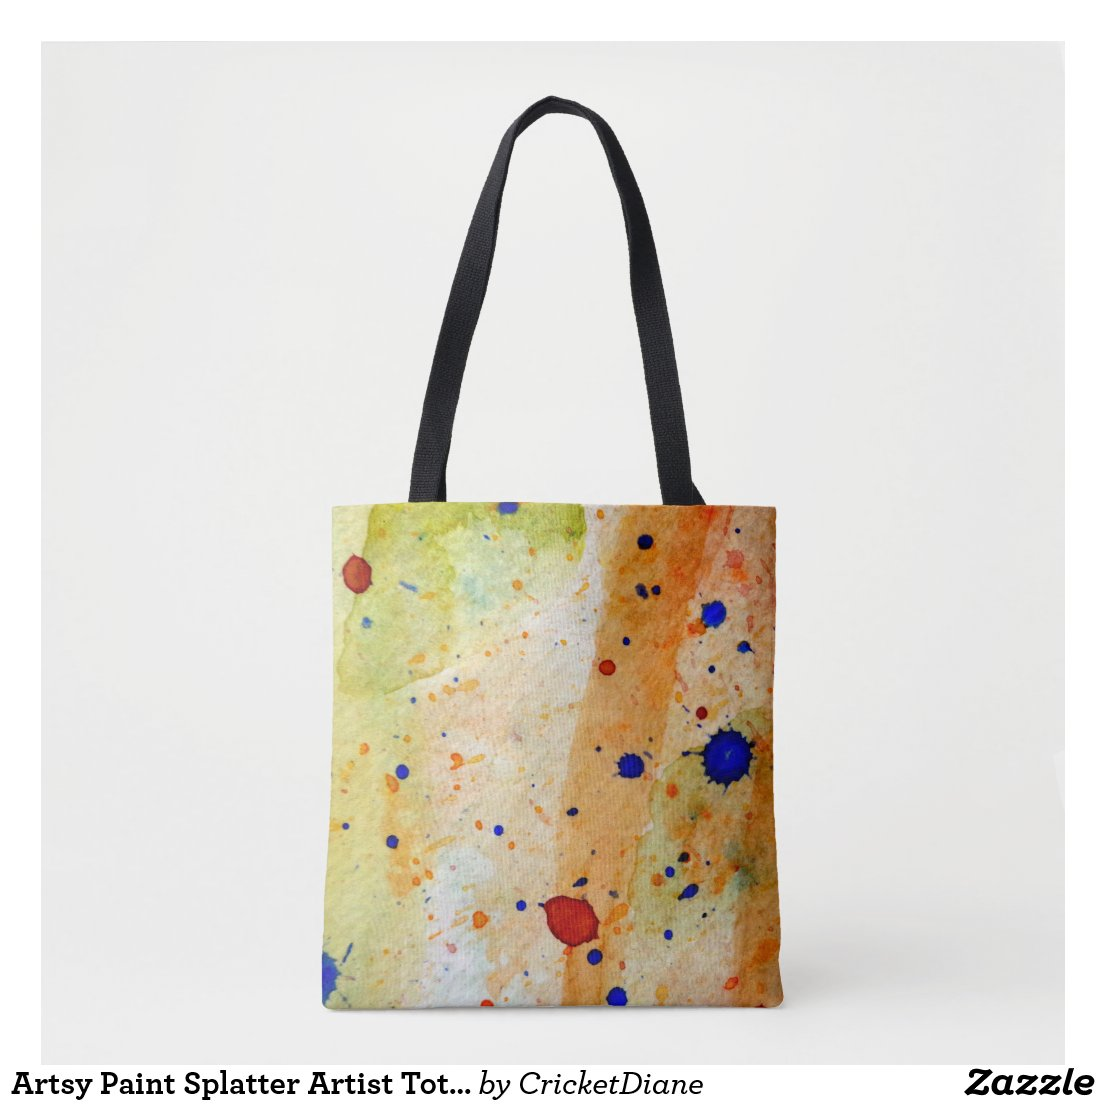 Artsy Paint Splatter Artist Tote Bag